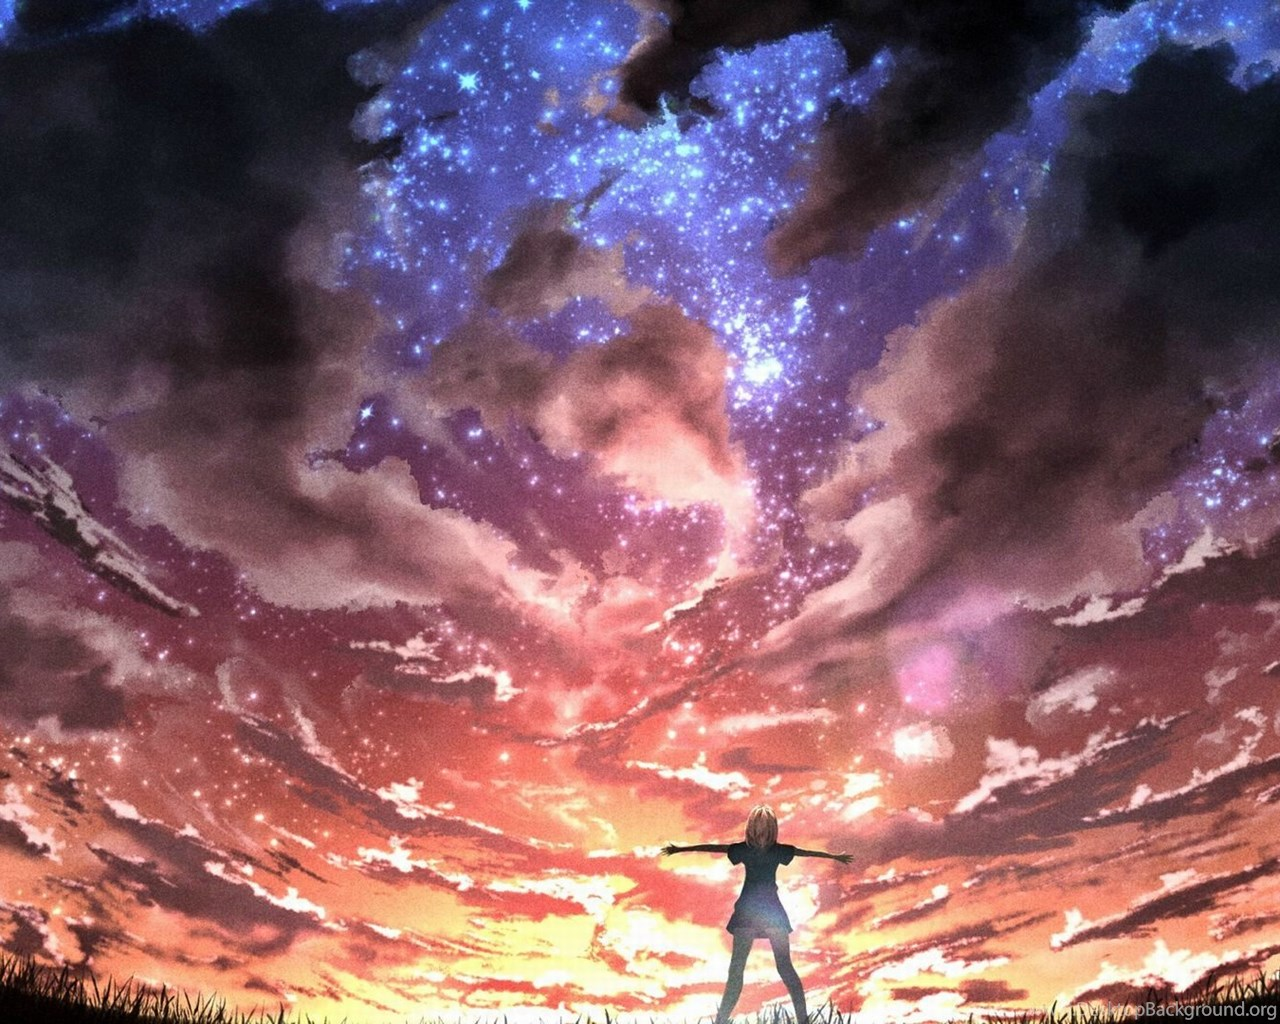 Your Lie In April Fantasy Anime Wallpapers Hd High Resoltuion